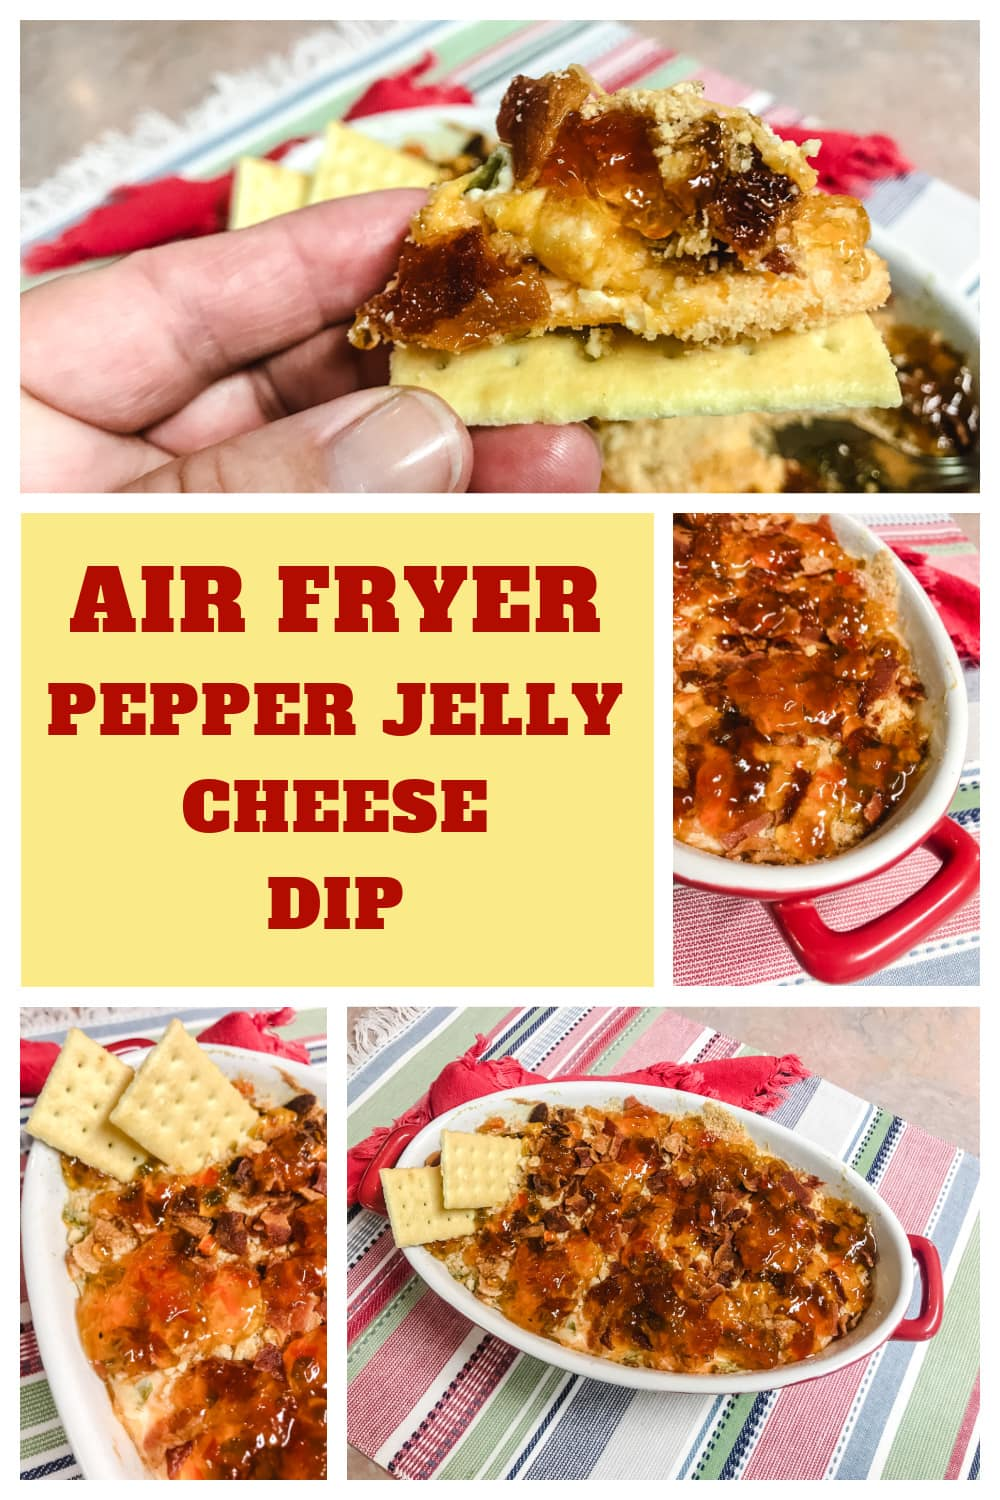 Air Fryer Pepper Jelly Cheese Dip with Craackers